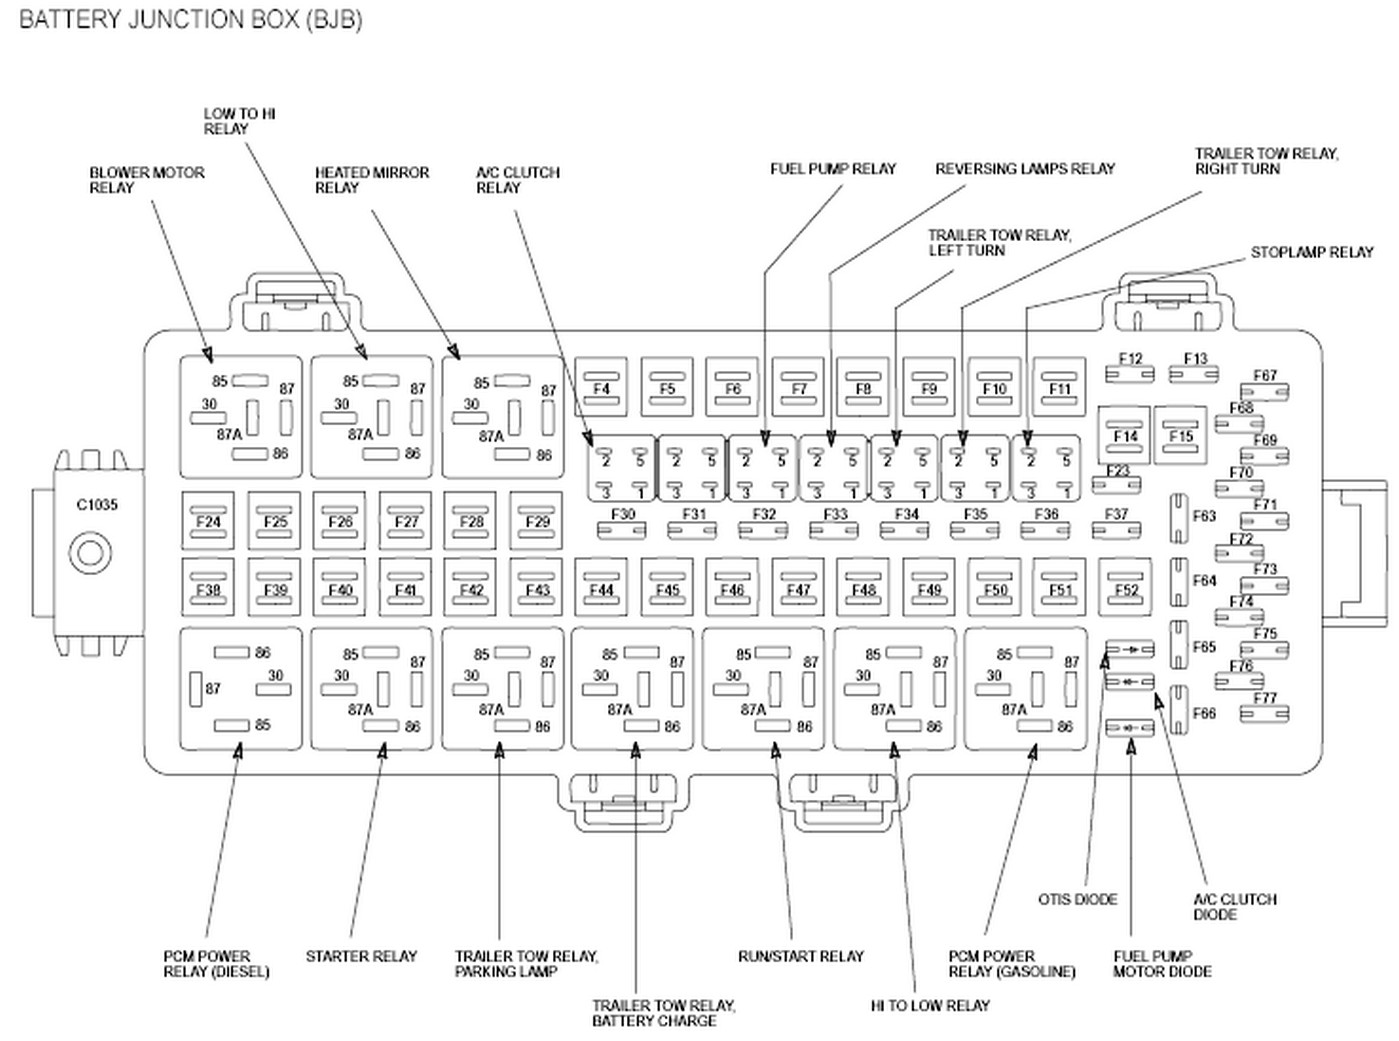 2008 Ford Fuse Box Diagram The Portal And Forum Of Wiring 05 09 Mustang Gt F 250 Third Level Rh 9 4 13 Jacobwinterstein Com